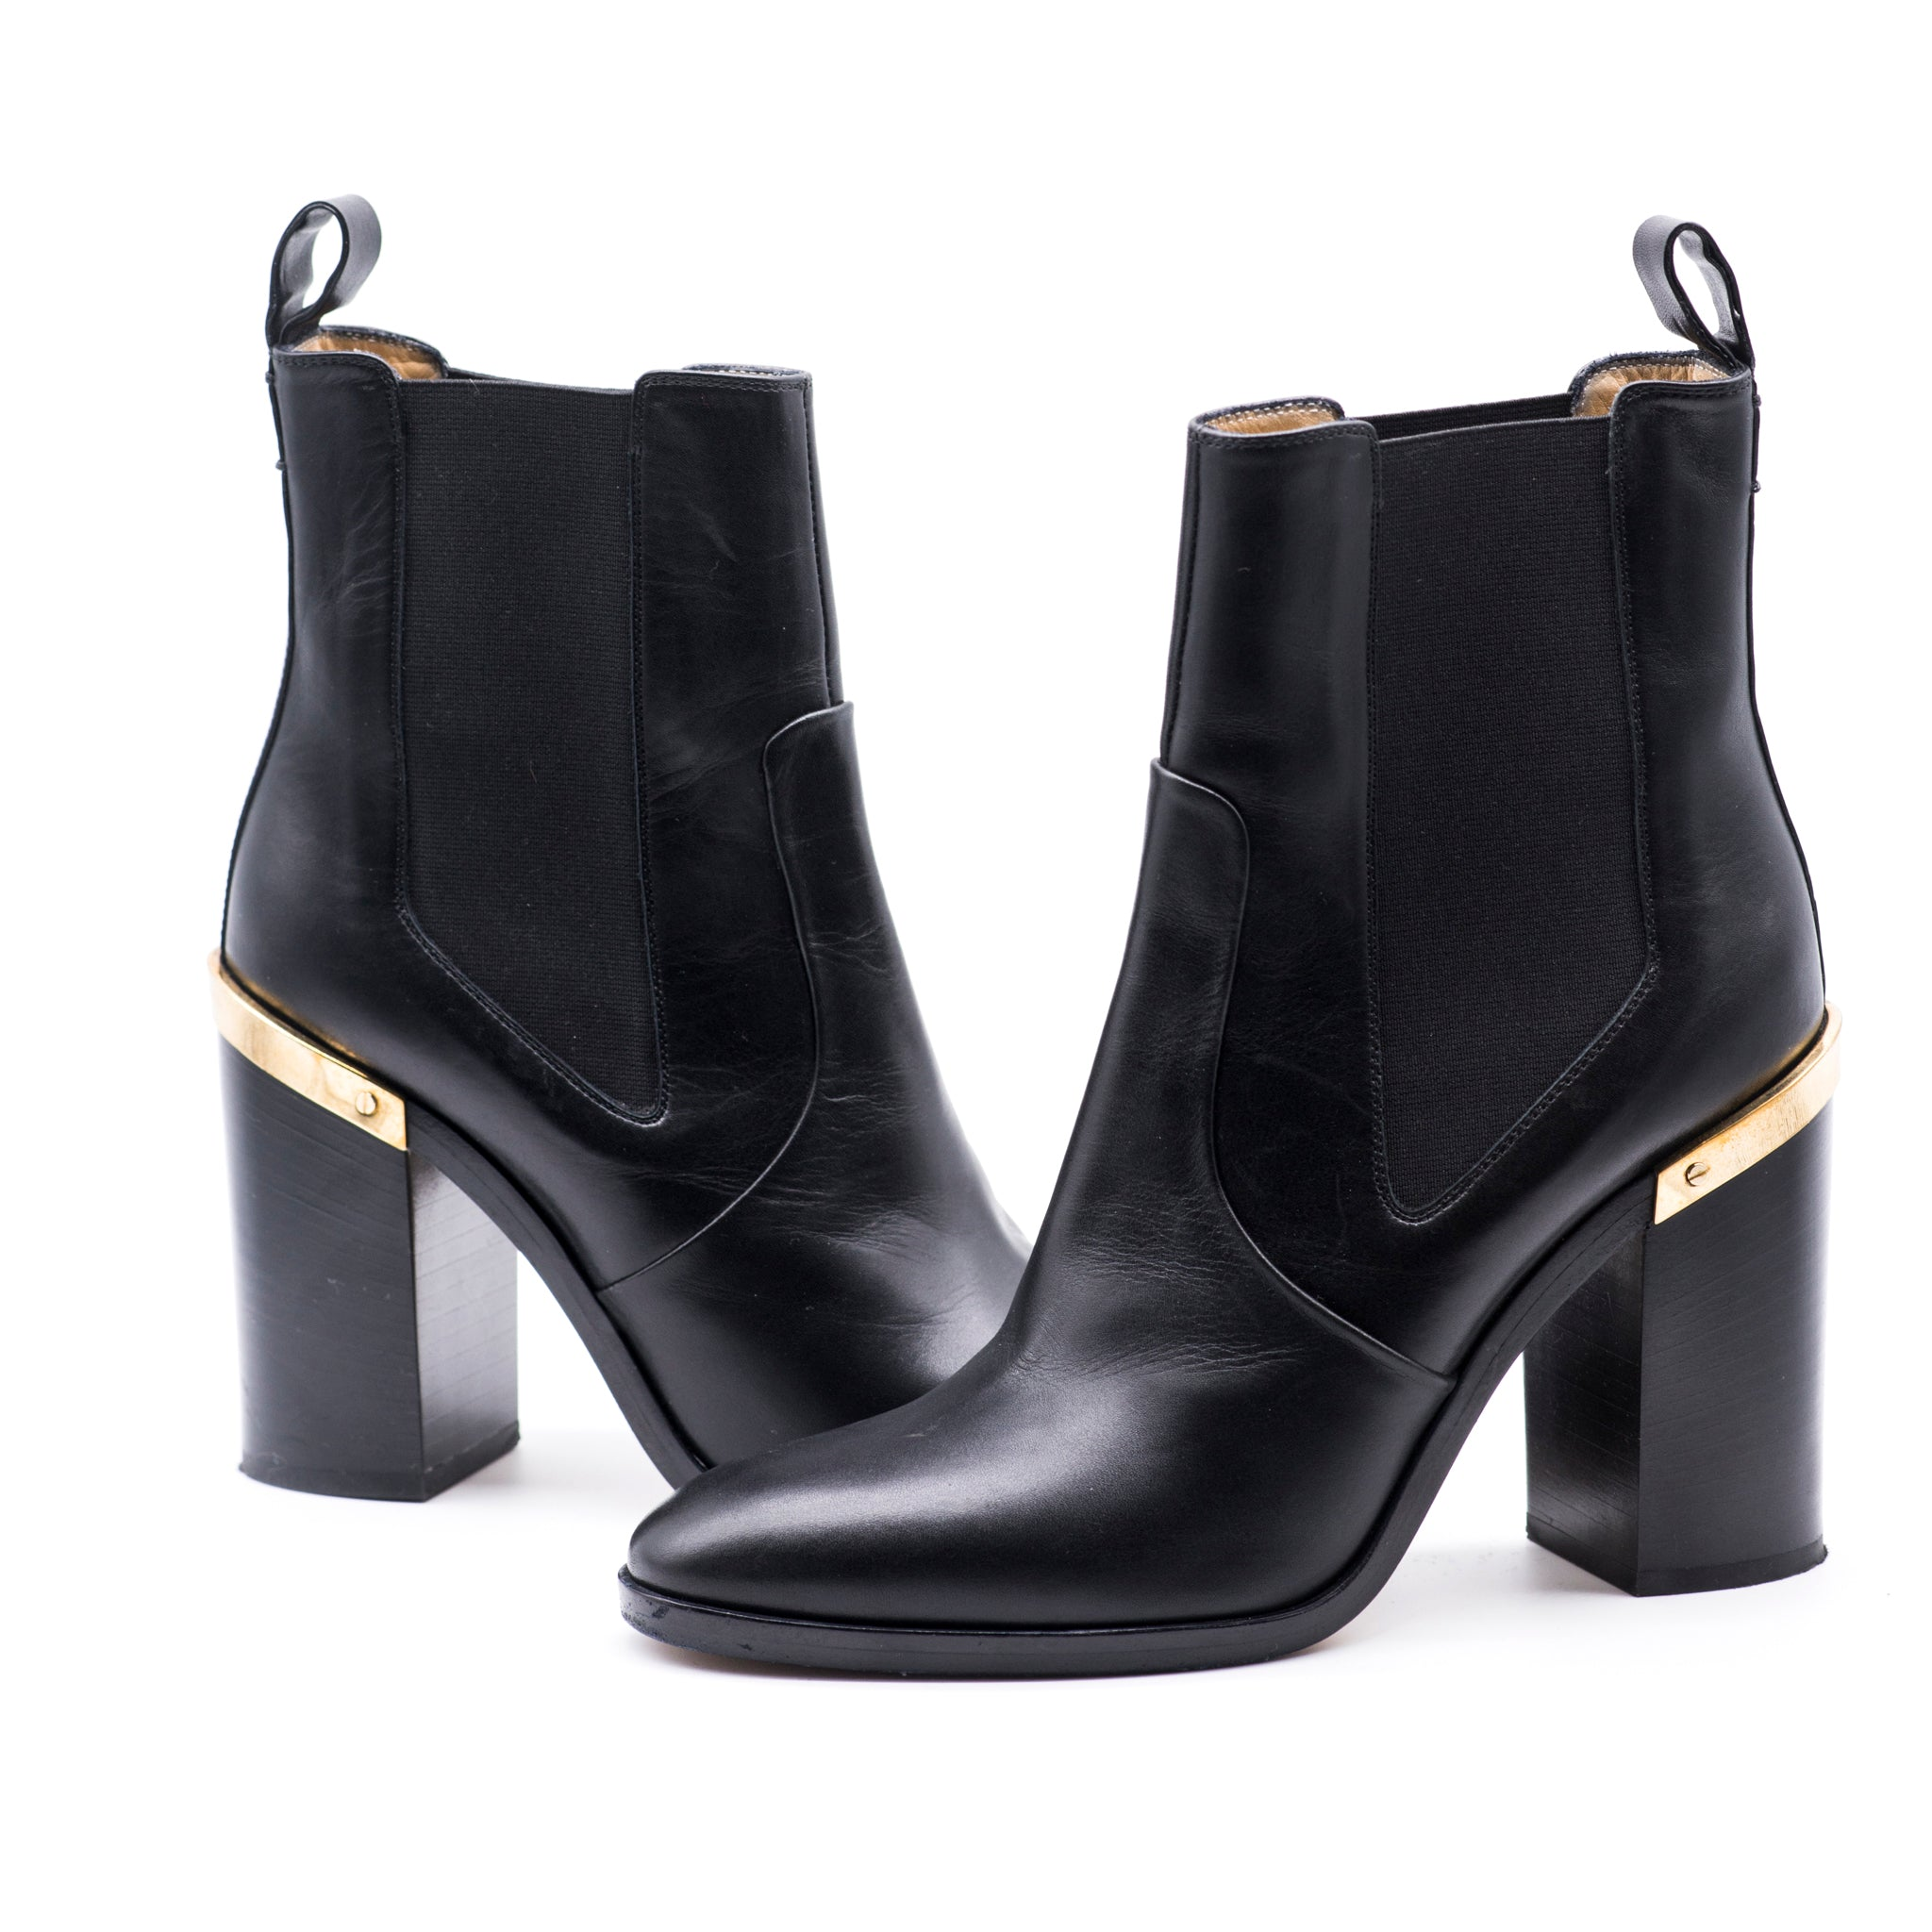 REED KRAKOFF Black Leather Gold Tone Metal Plate Stacked Heel Ankle Boots 39